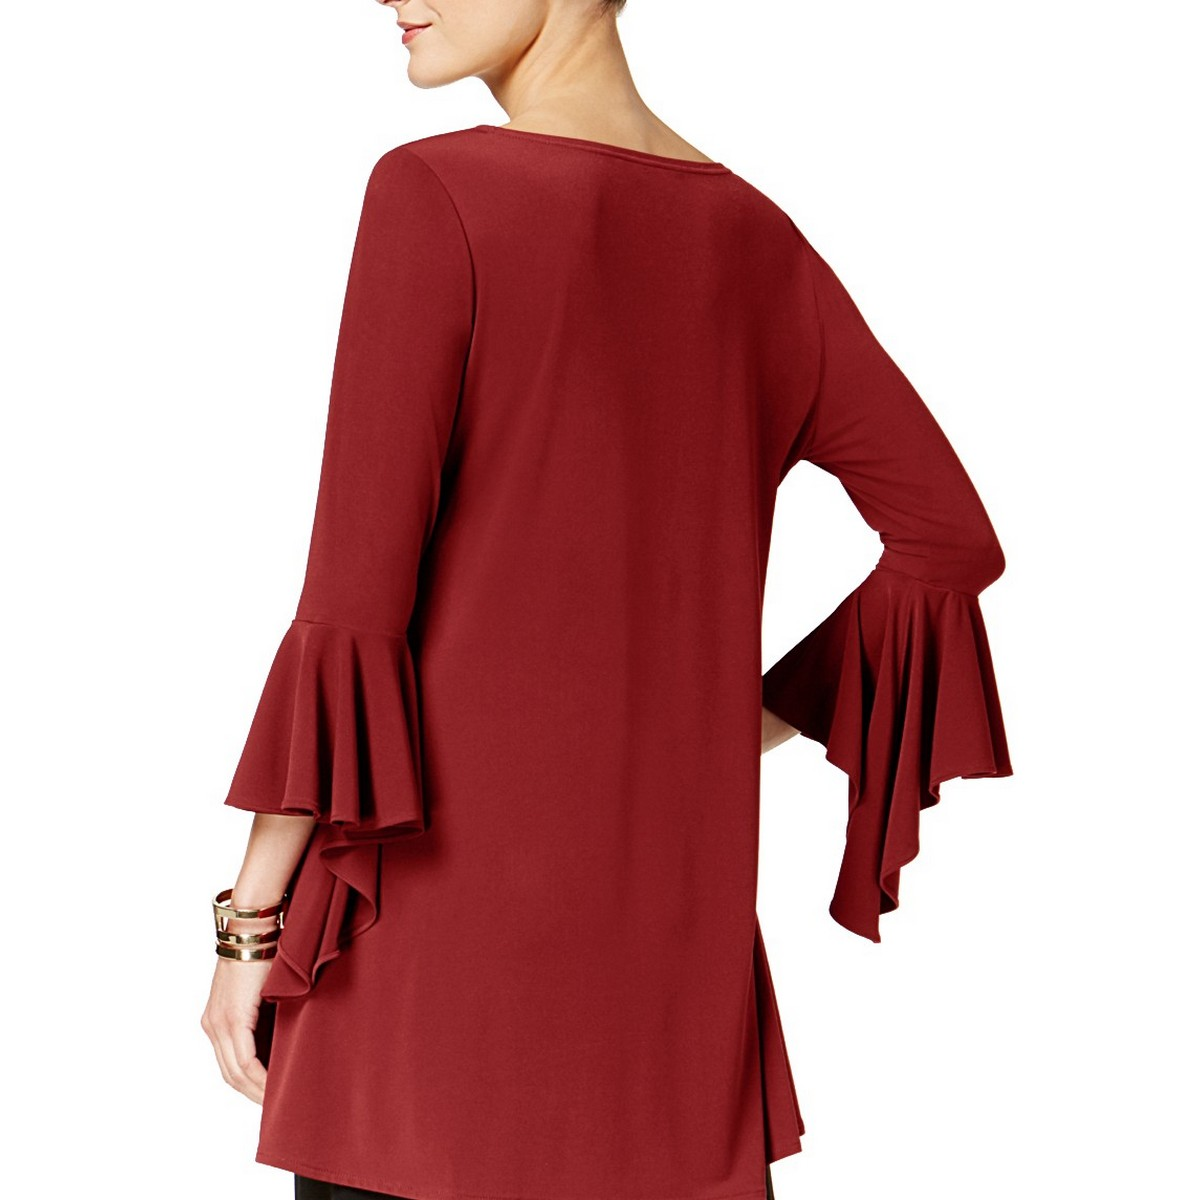 ALFANI-NEW-Women-039-s-Ruffle-sleeve-High-low-Blouse-Shirt-Top-TEDO thumbnail 5